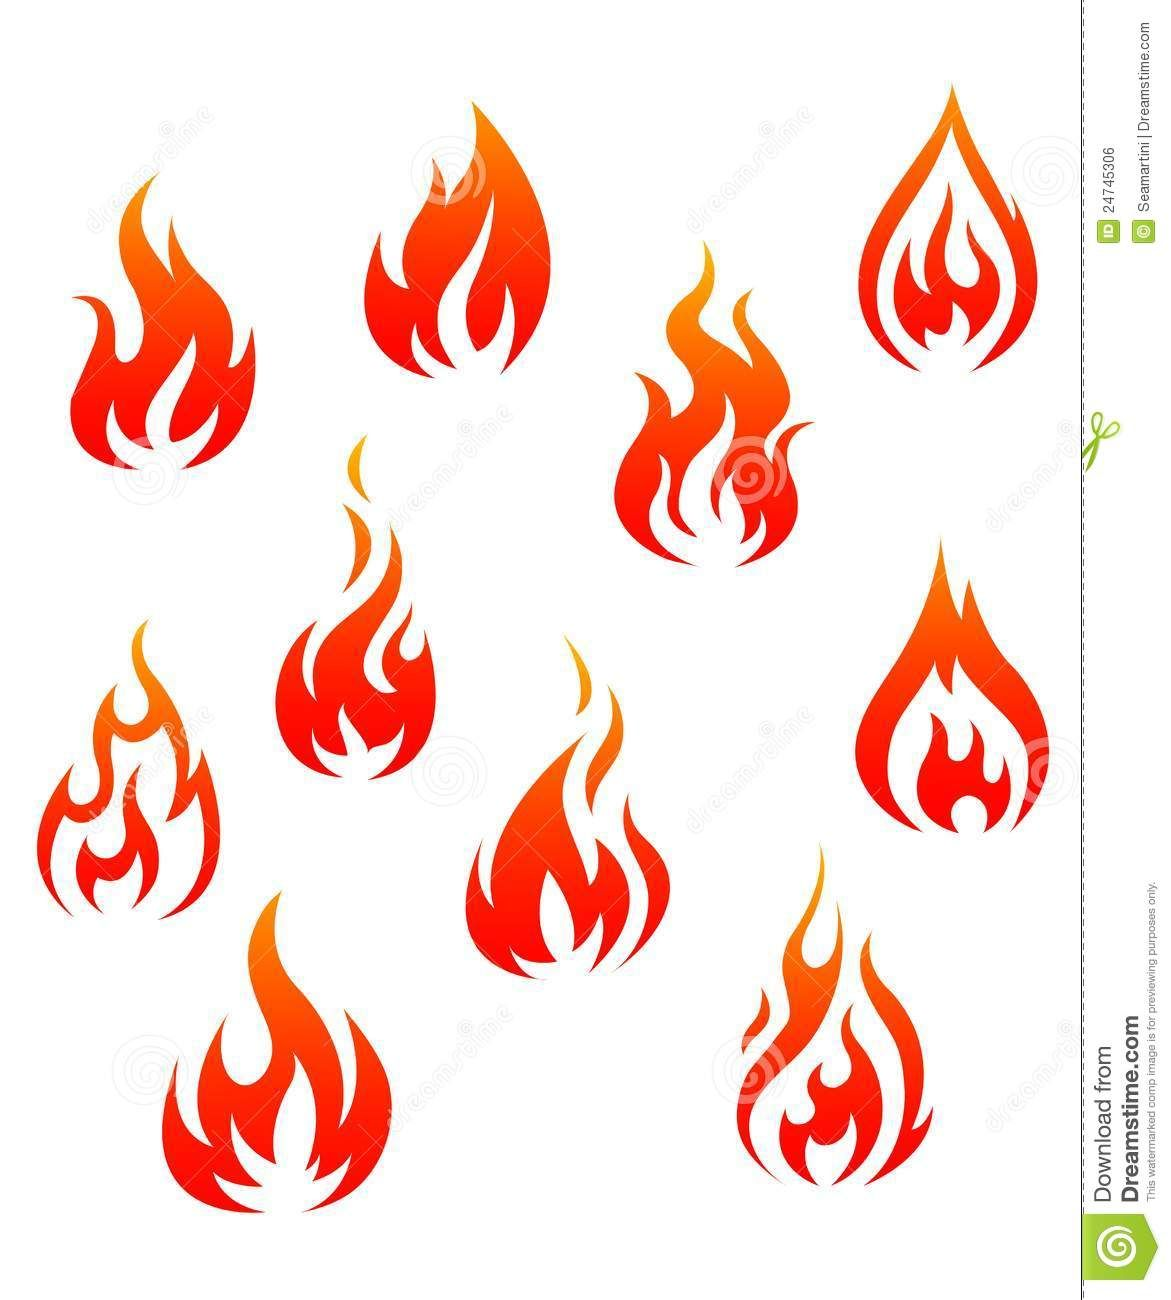 Symbols for fire gallery symbol and sign ideas chinese fire symbol yahoo image search results sergei cover illustration of set of fire flames isolated buycottarizona